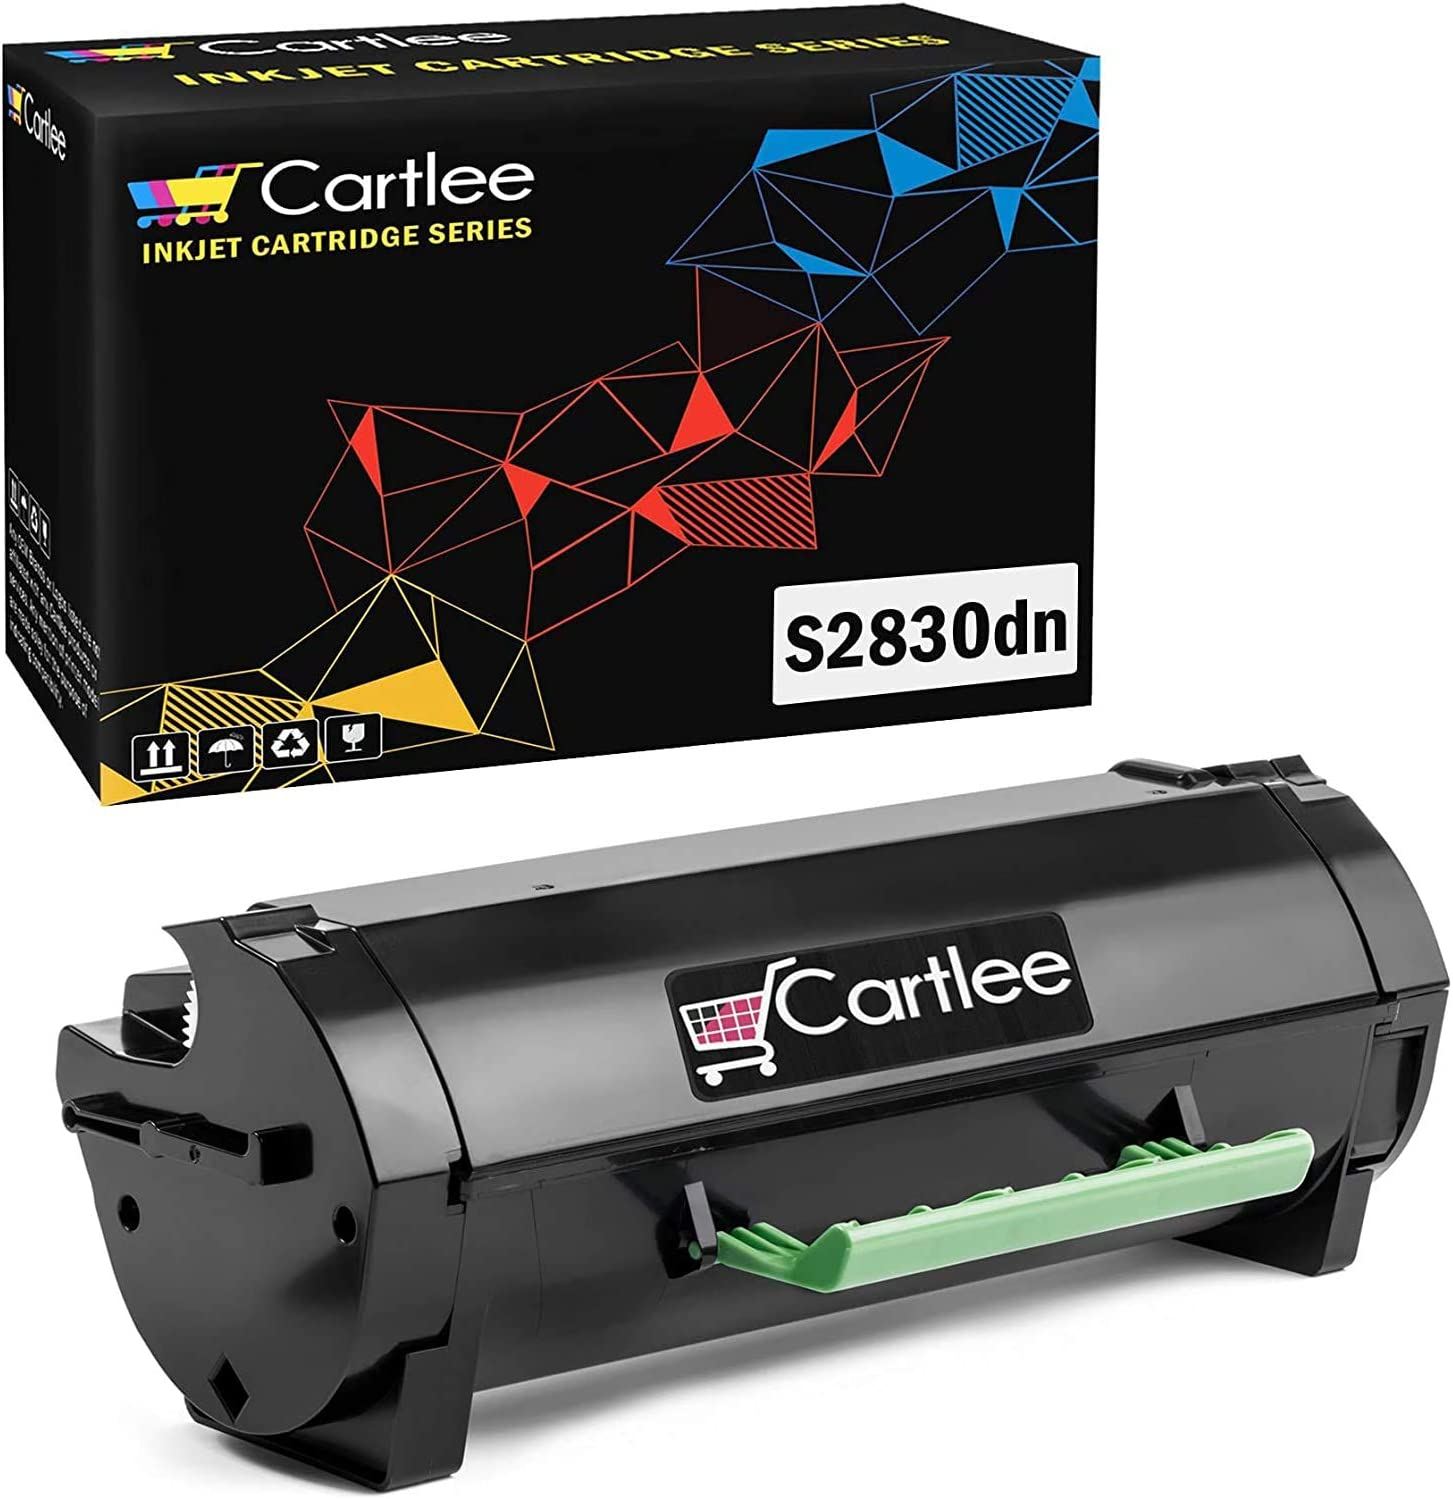 Cartlee Compatible Black S2830 High Yield Laser Toner Cartridge Replacement for Dell (8500 Page Yield) S2830 S2830dn 2830 dn 2830dn Smart Series Ink Printers